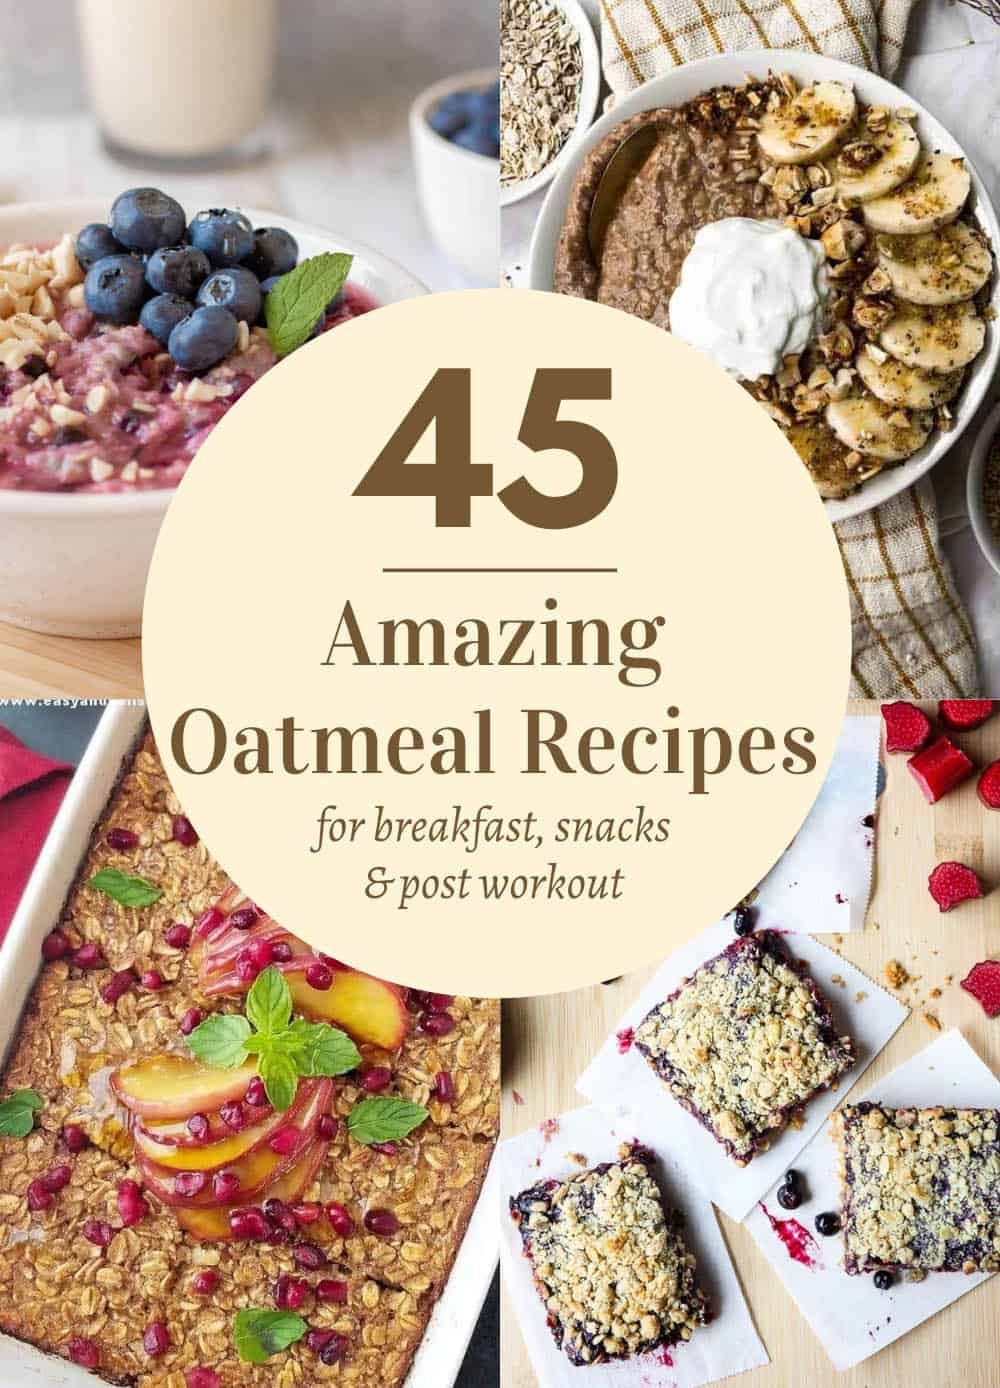 4 photos of oatmeal with text ovelay stating 45 amazing oatmeal recipes.